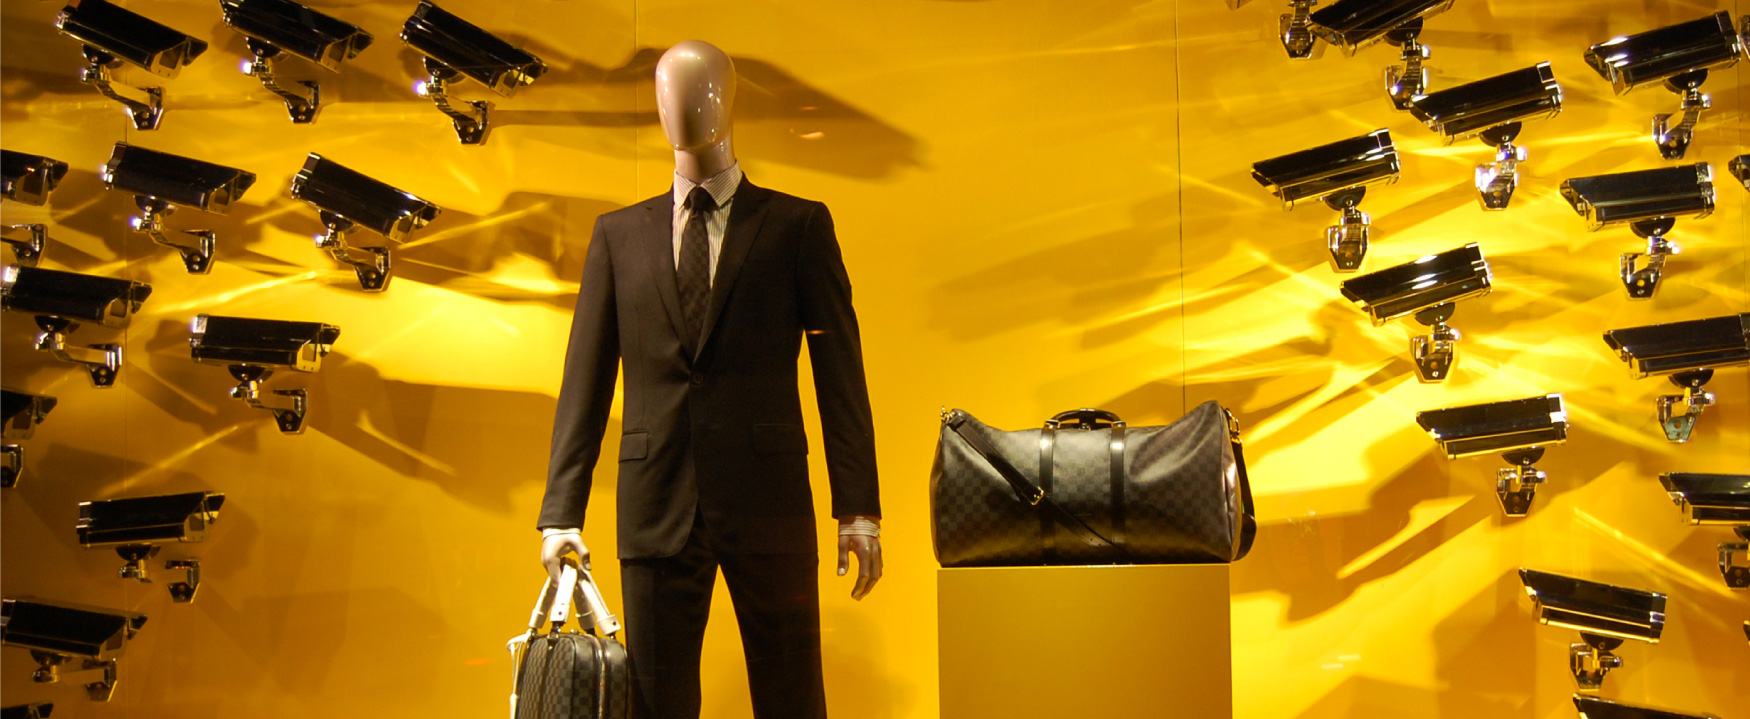 A display shows a mannequin dressed in a business suit, holding a designer bag, with a second designer bag on a pedestal beside it. On the wall behind the mannequin are dozens of security cameras pointed at it, and the bags.